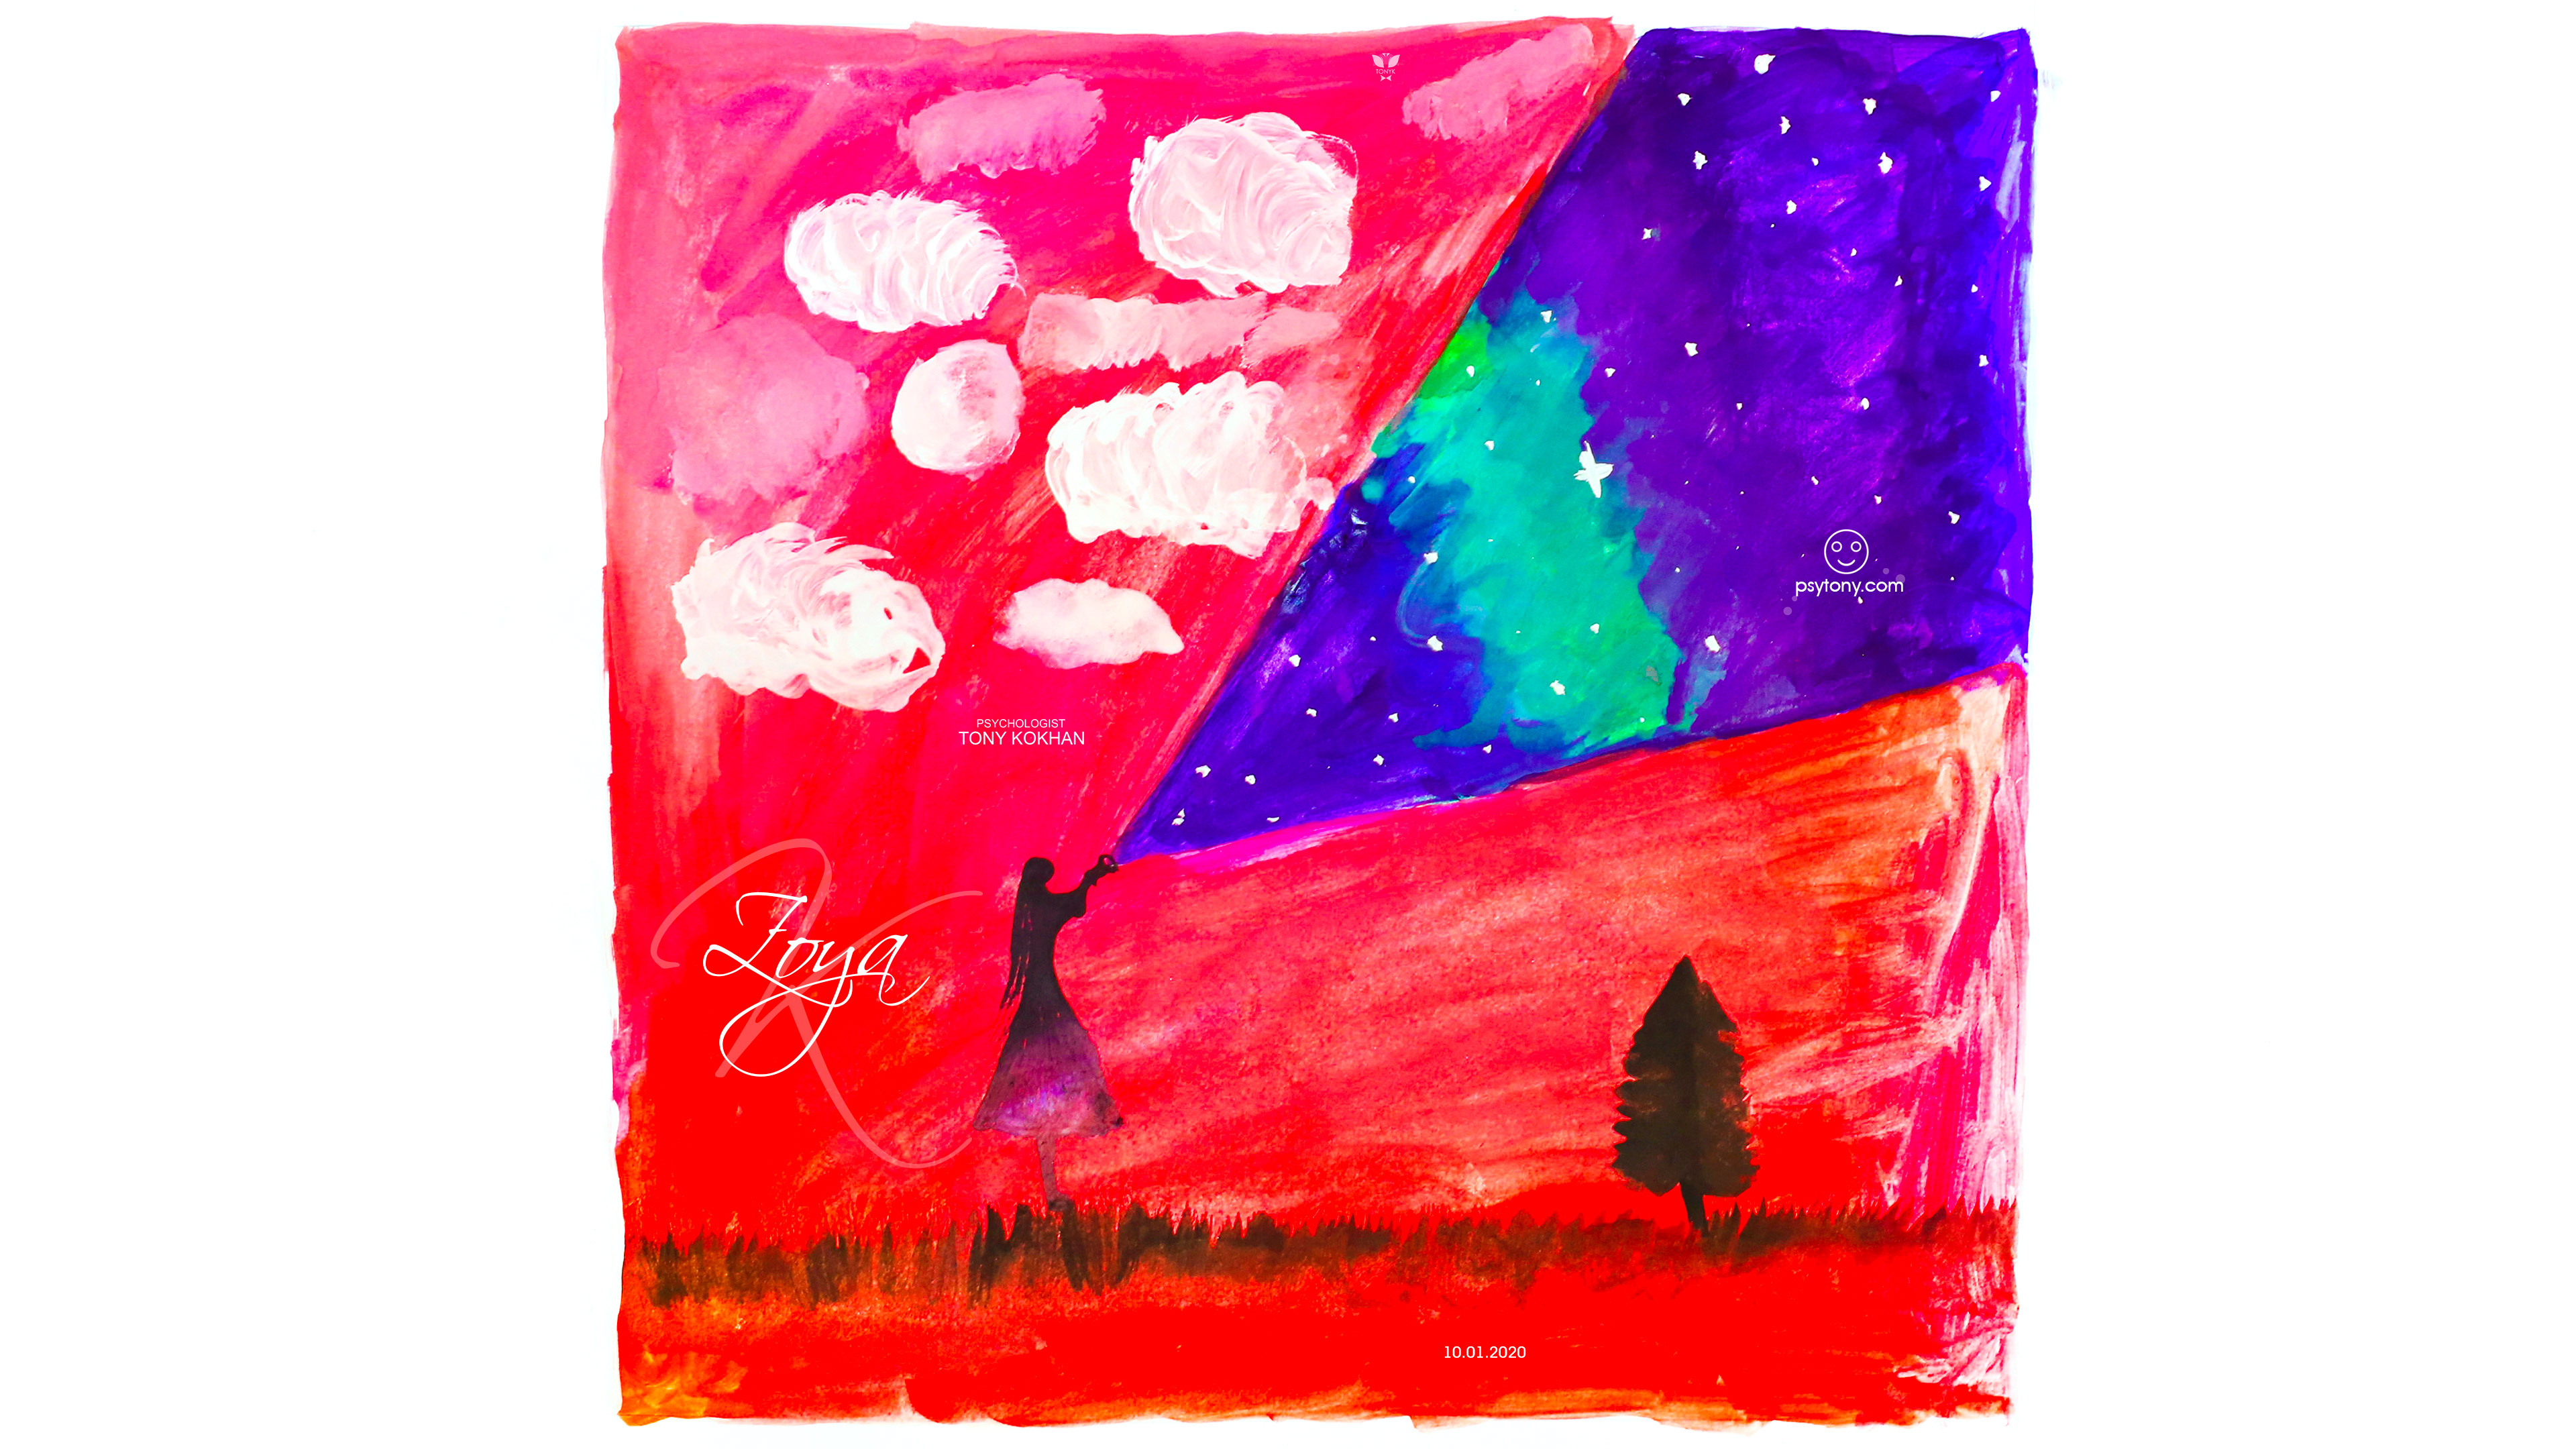 Zoya-Soul-Girl-Space-Stars-Flashlight-Ray-Sky-Nature-Grass-Tree-Karma-Bird-Square-Frame-Picture-Gouache-Art-2020-Multicolors-4K-Wallpapers-by-Psychologist-Tony-Kokhan-www.psytony.com-image